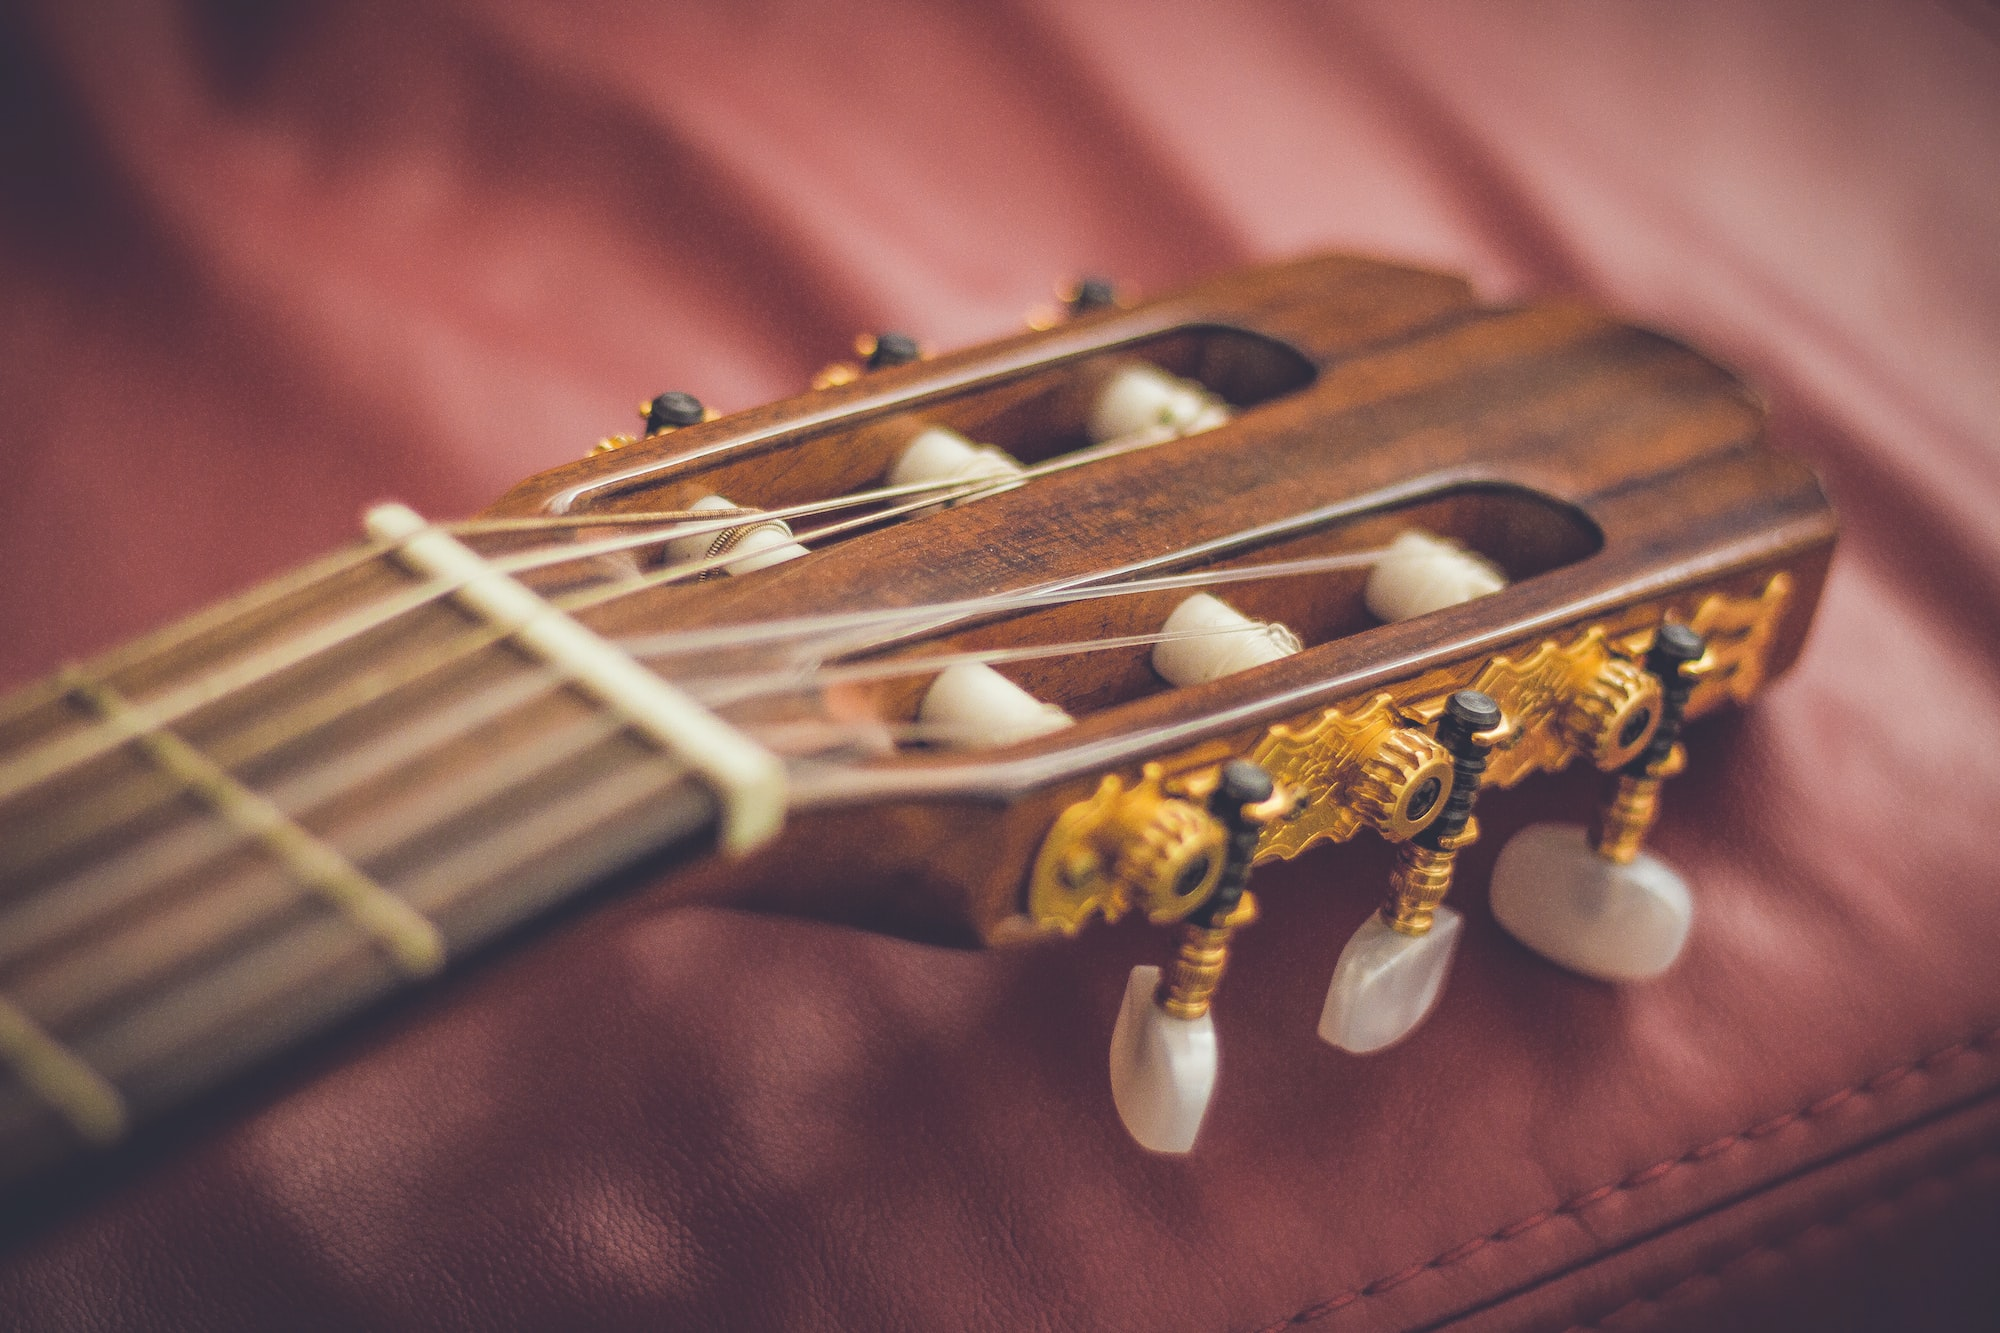 Macro of guitar frets and tuning pegs on leather surface